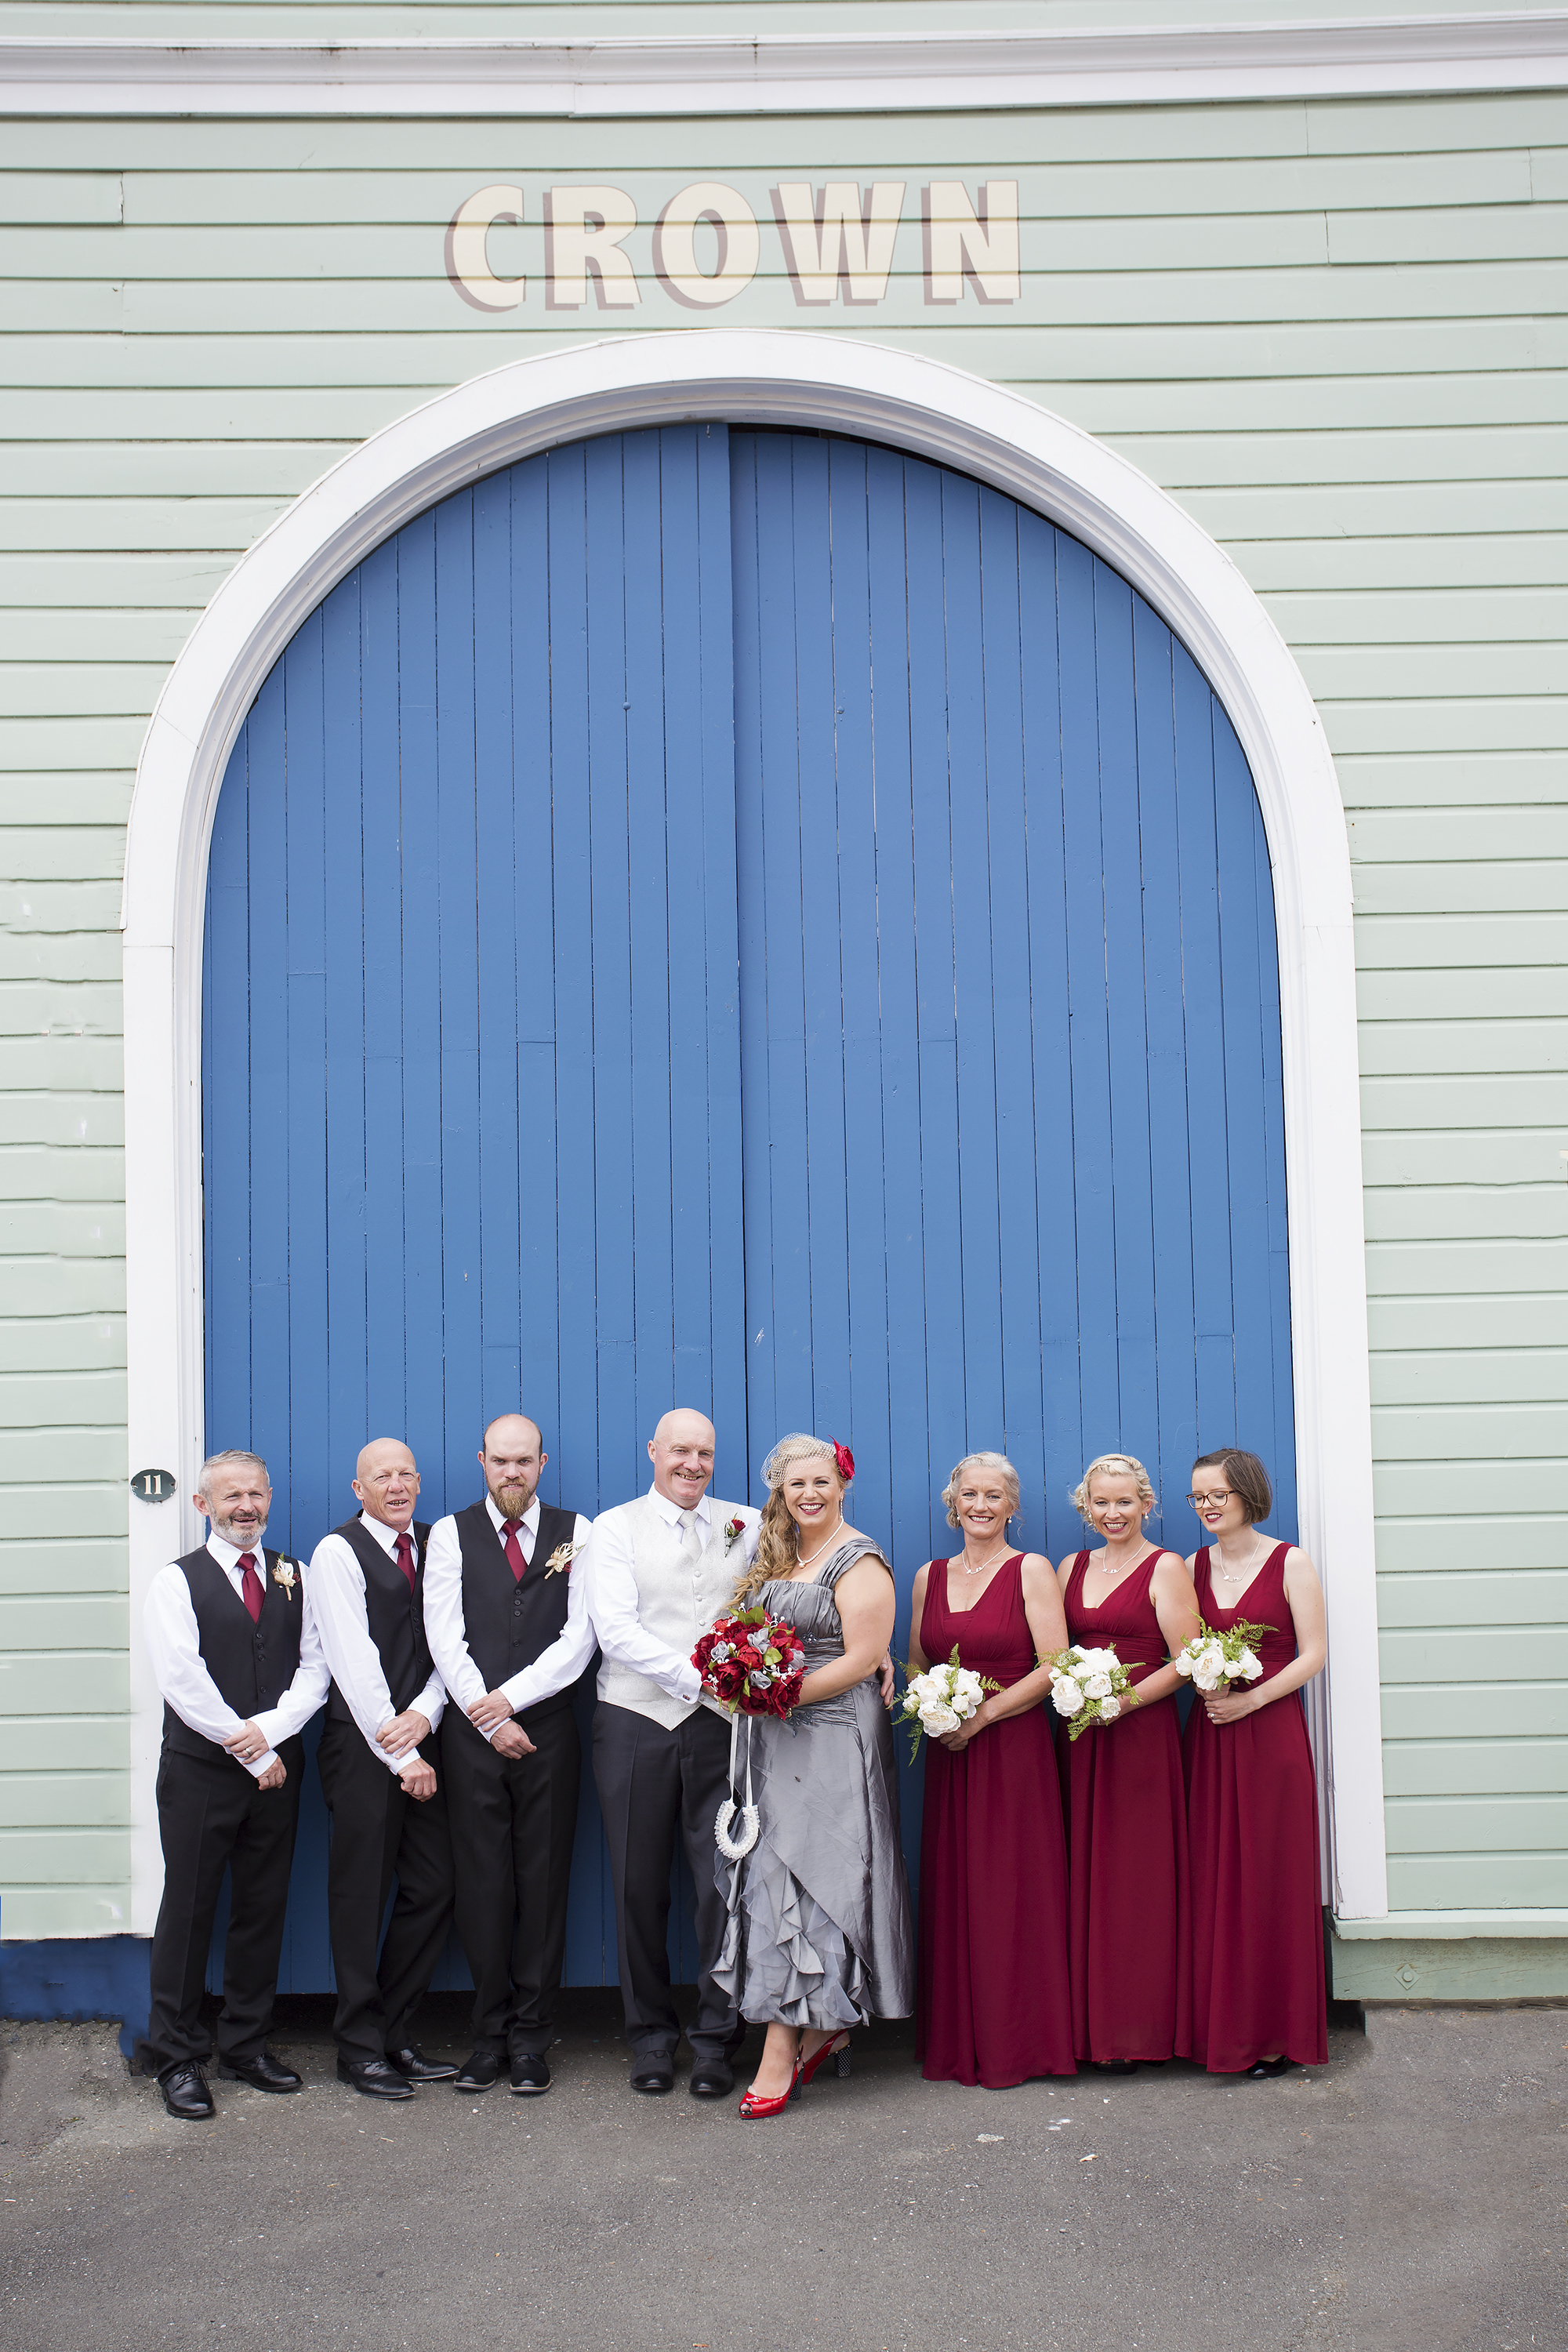 4 Bride and Groom Bridal Party52.jpg